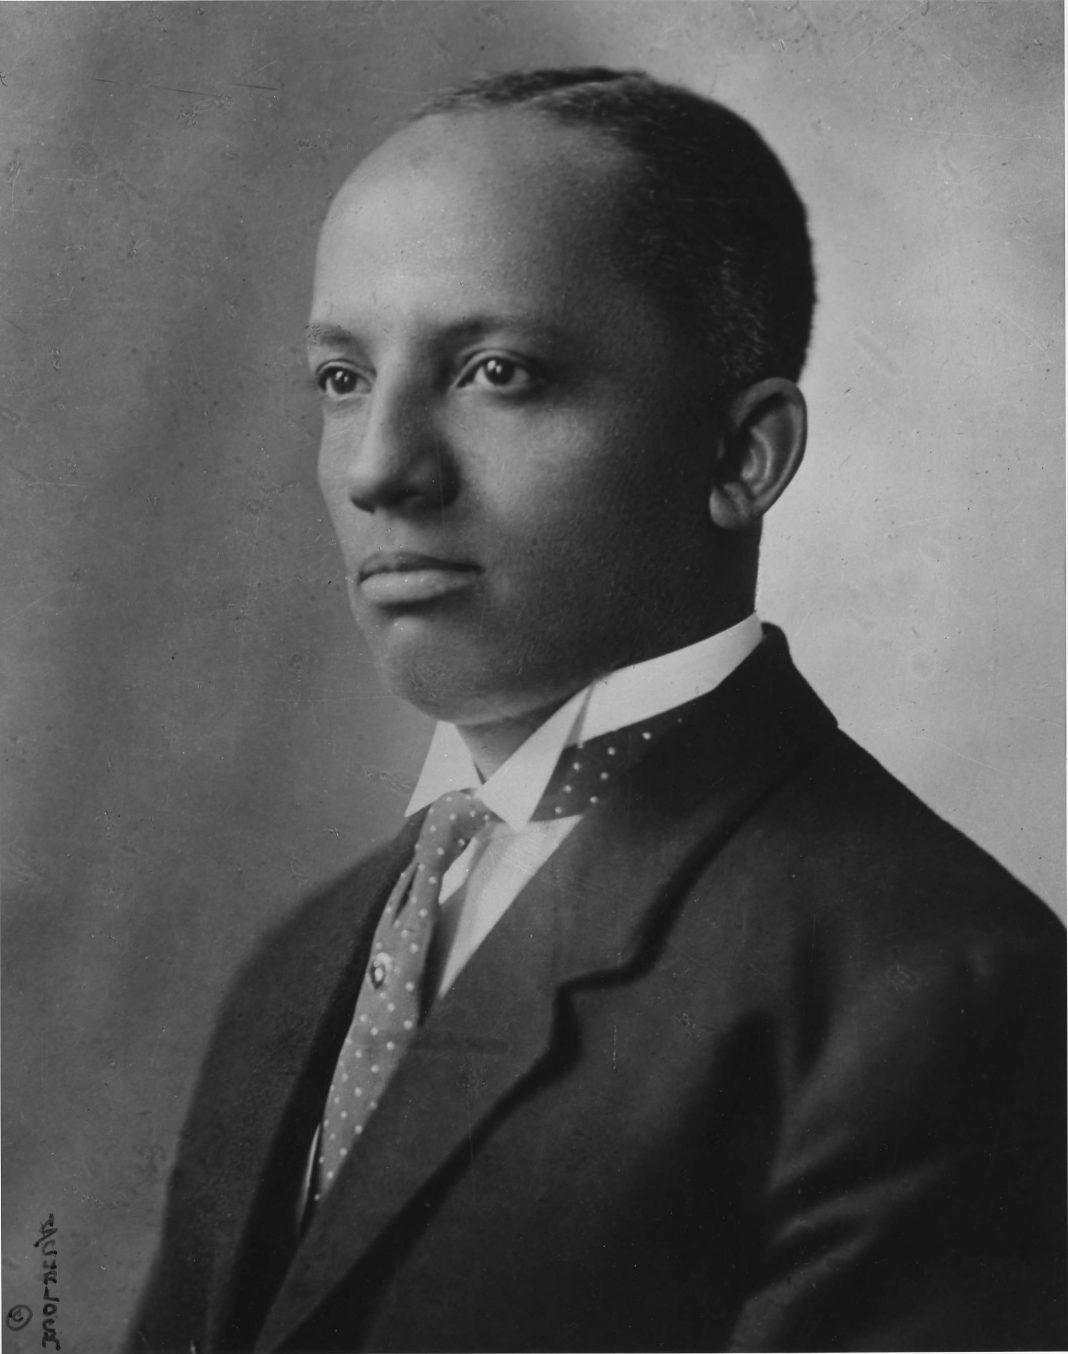 the early life story of dr carter g woodson and his life achievements The story of black history month begins in 1915, half a century after the thirteenth amendment abolished slavery in the united states that september, the harvard-trained historian carter g woodson and the prominent minister jesse e moorland founded the association for the study of negro life and history (asnlh), an organization dedicated.